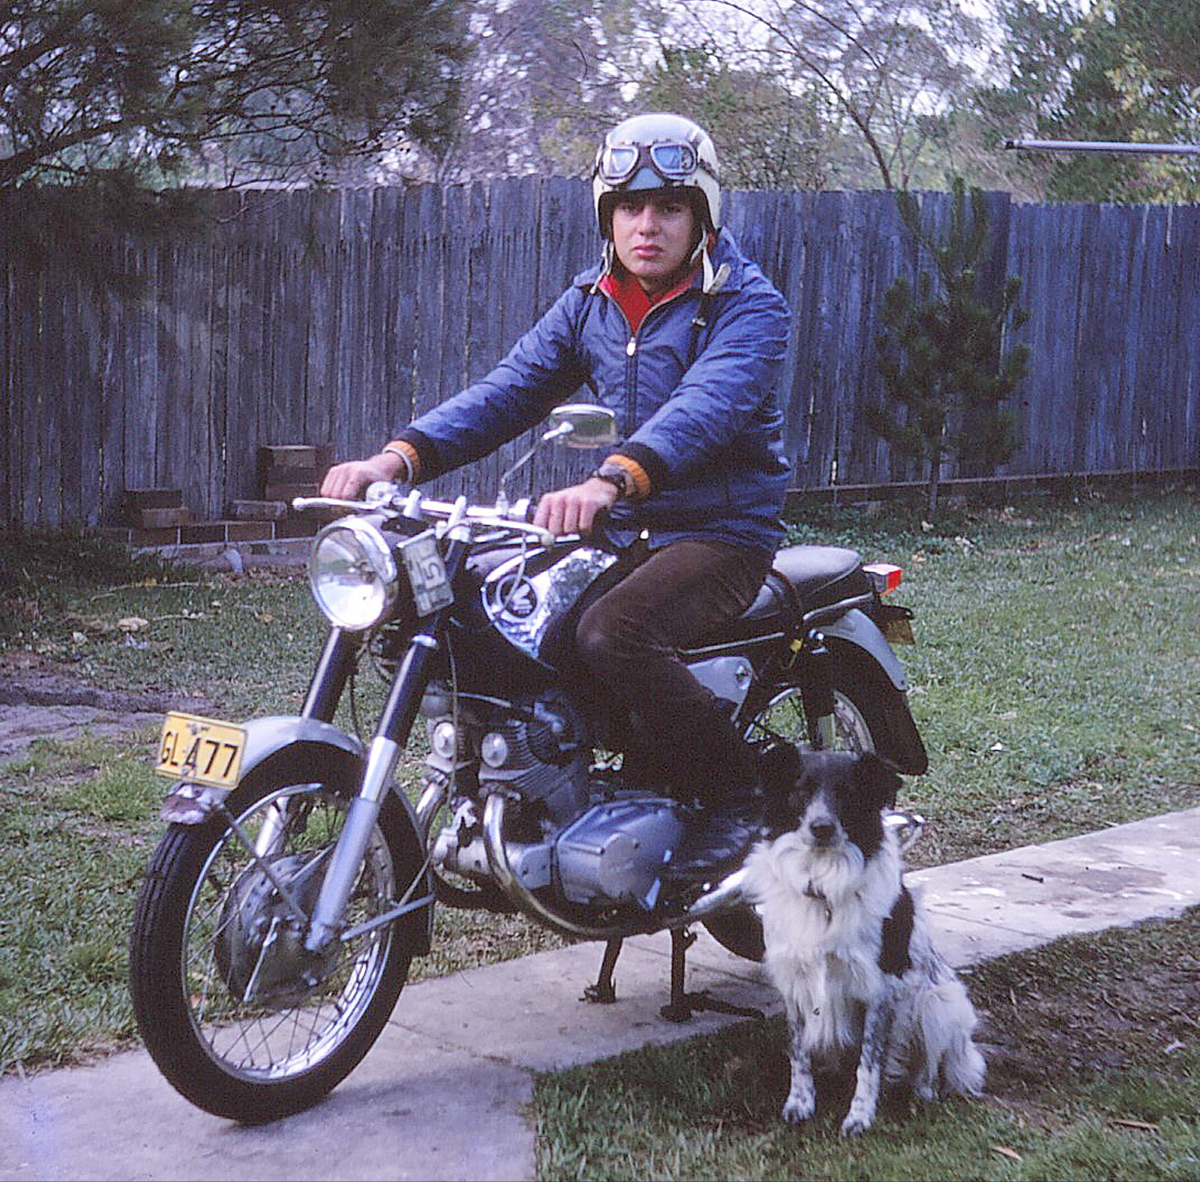 Geoff with his first motorcycle